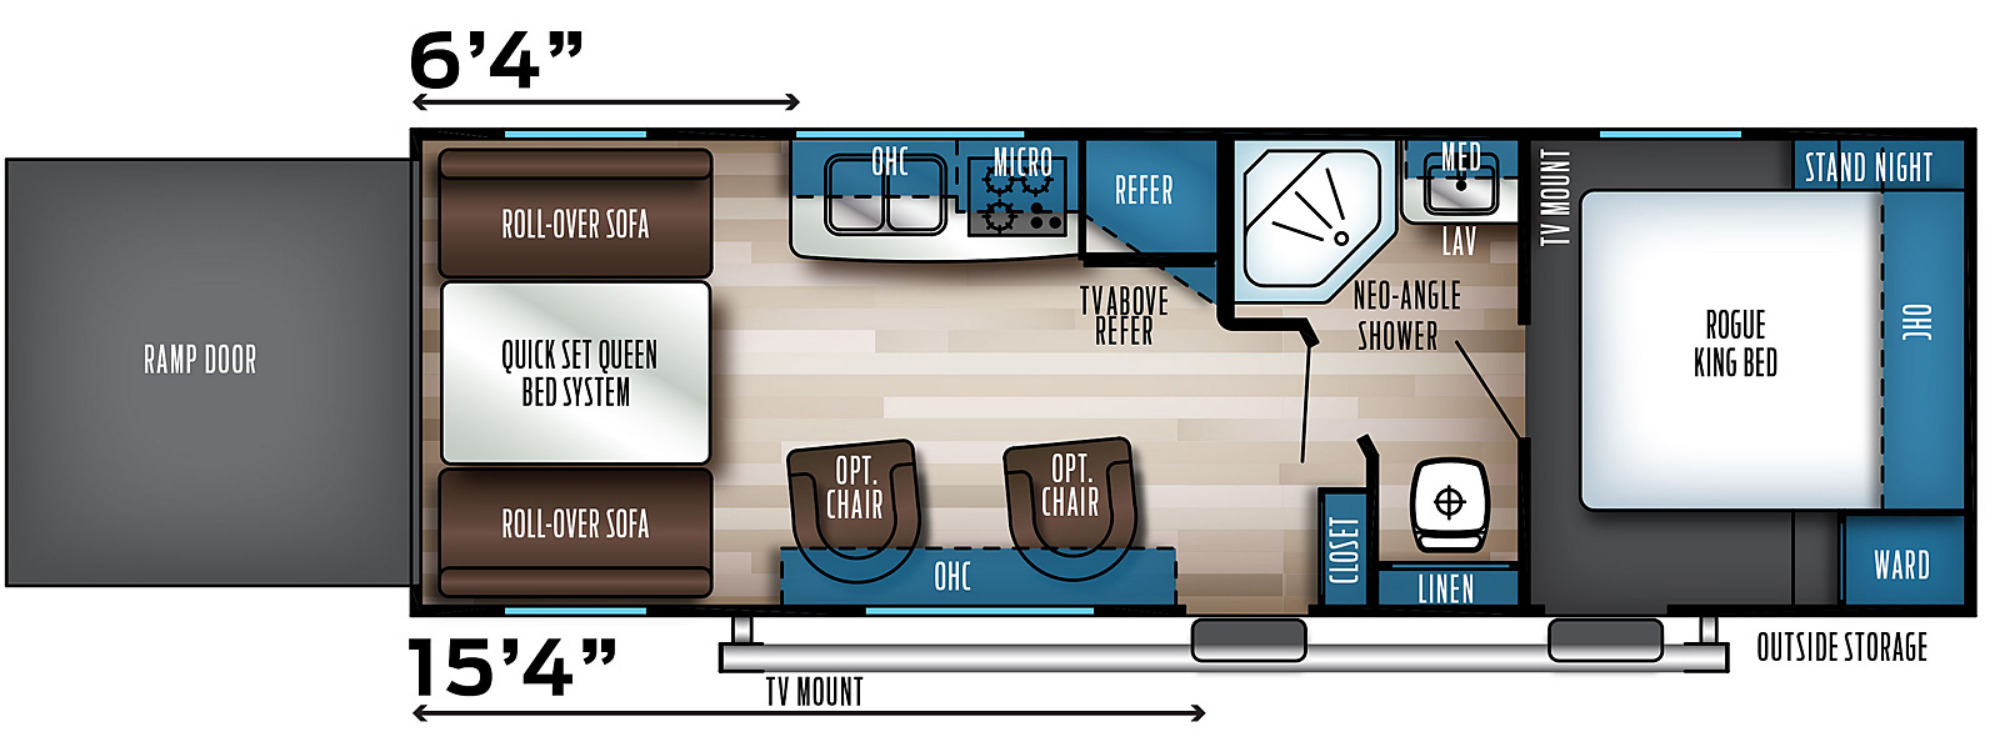 View Floor Plan for 2021 FOREST RIVER ROGUE 25V